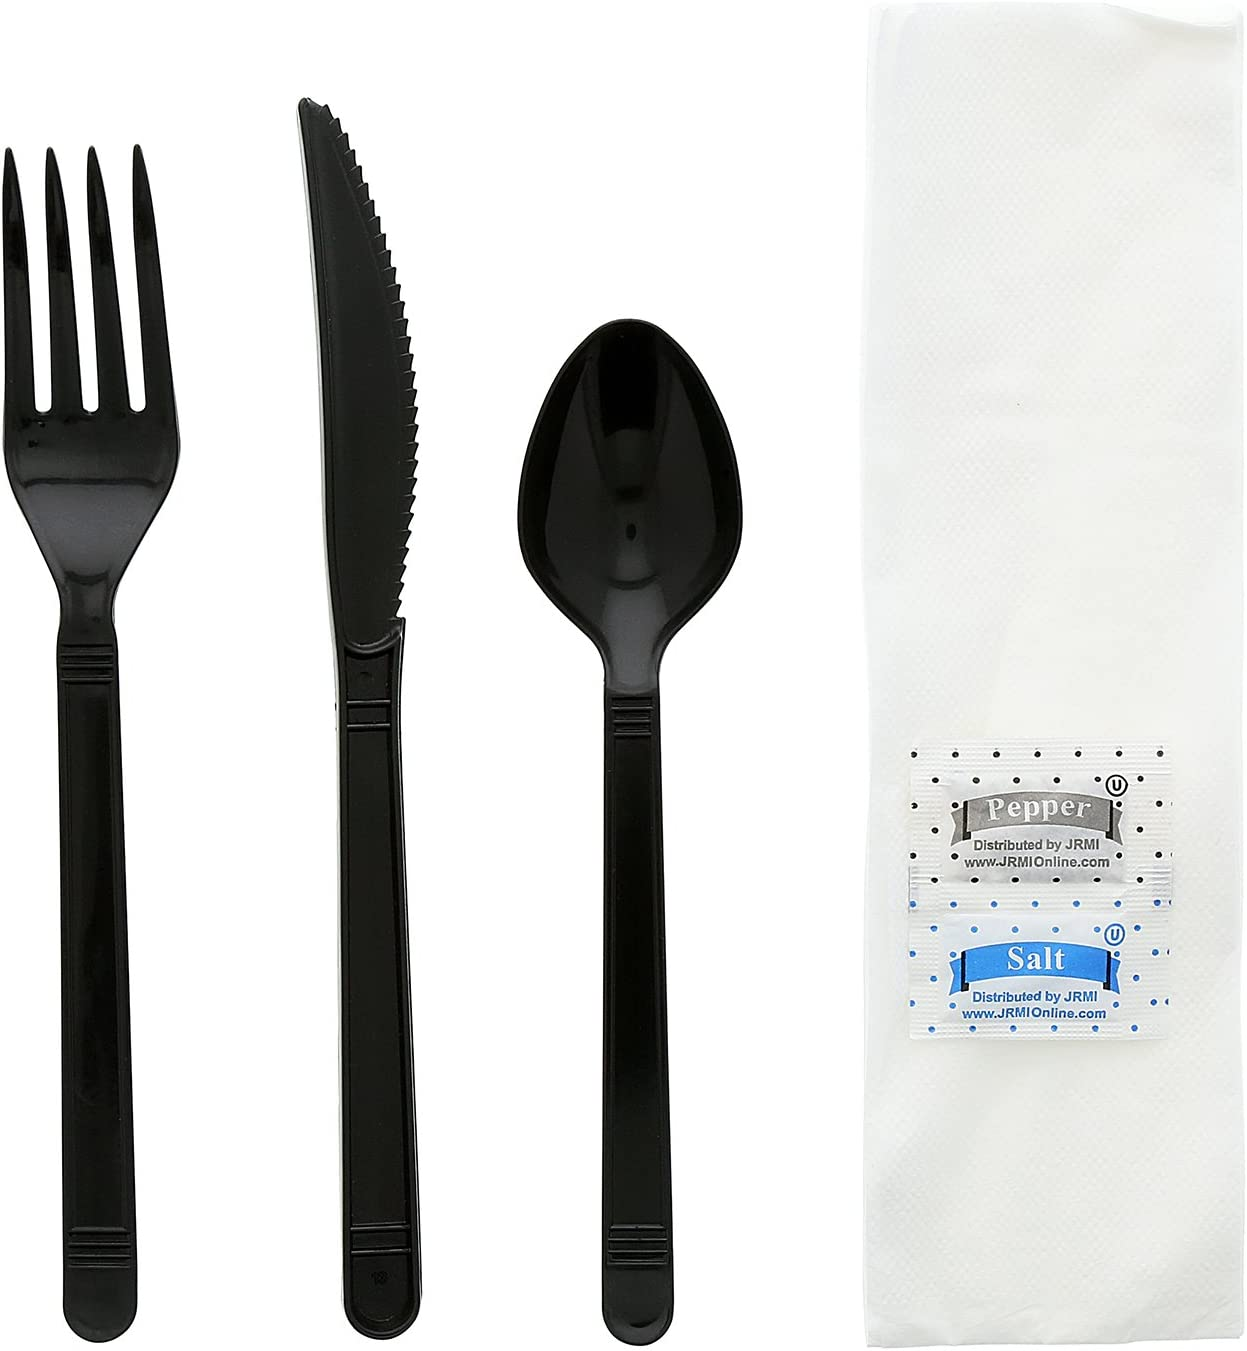 Black Heavy Weight Fork and Teaspoon Knife AmerCare Six Piece Meal Kit with 13 x 17 Napkin Salt and Pepper Packets Case of 250